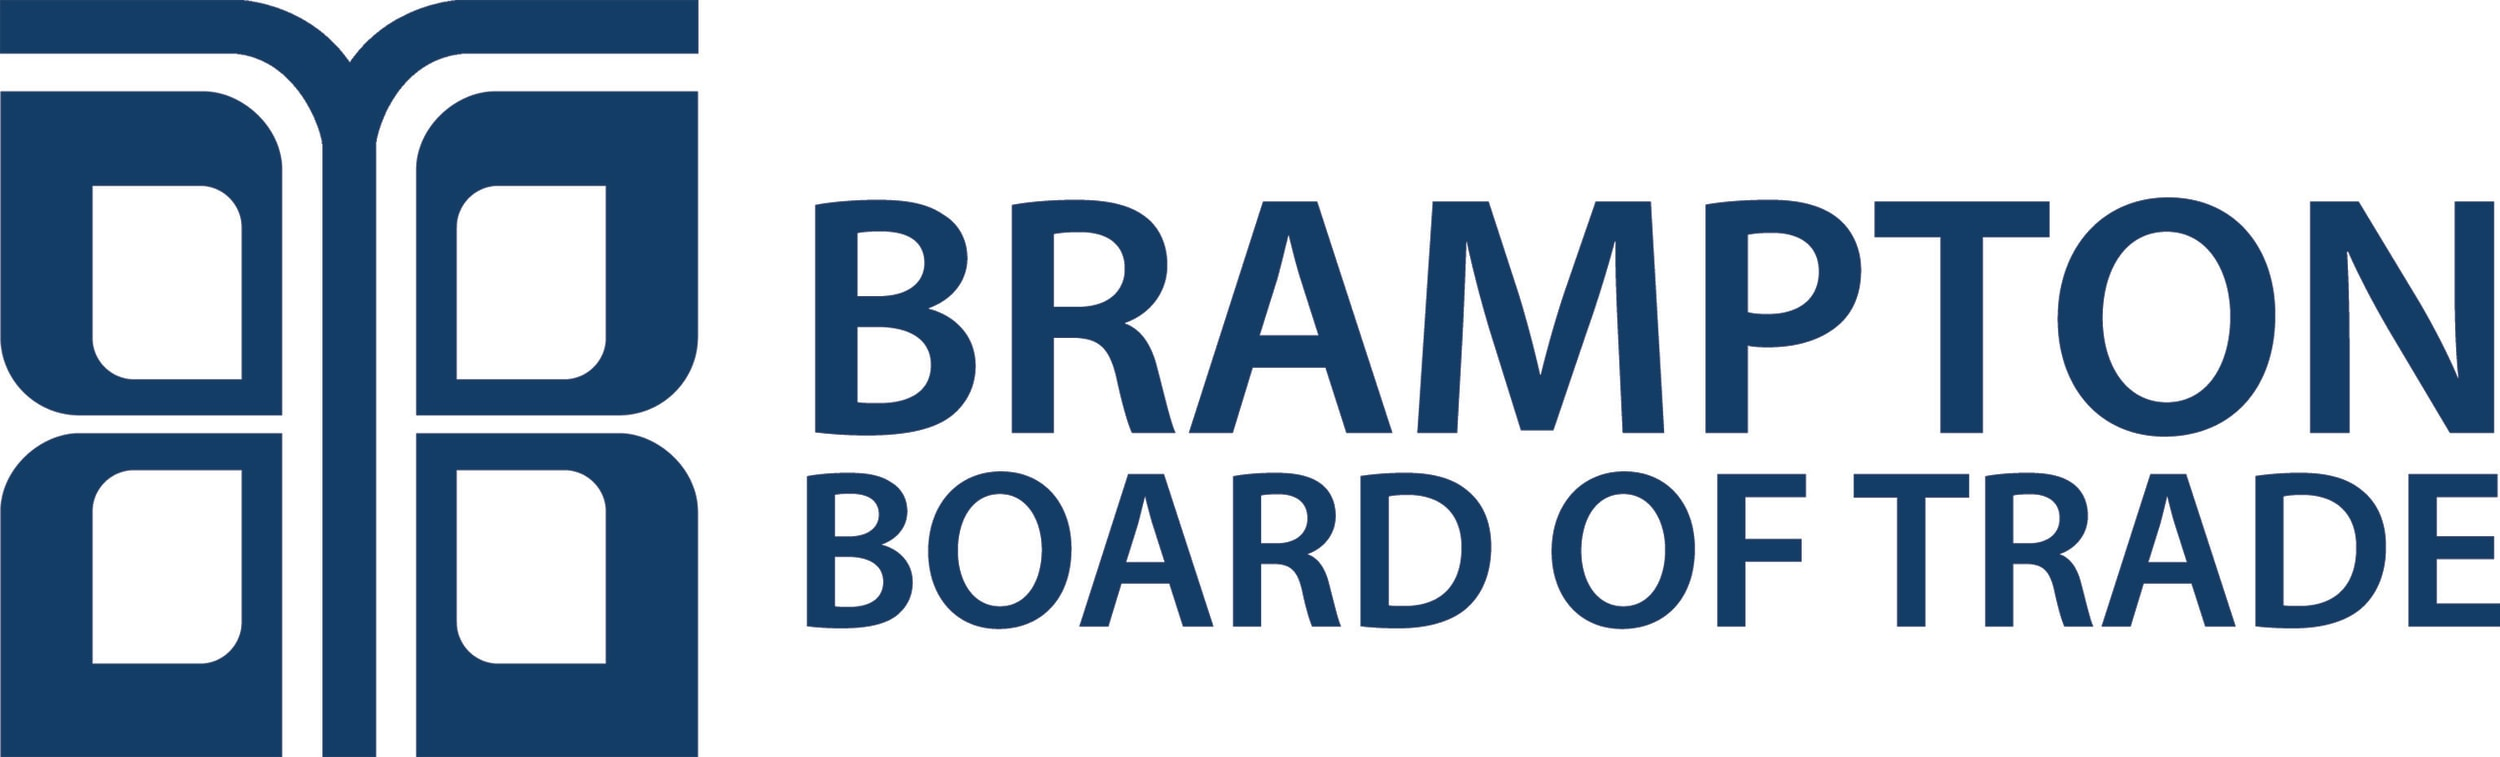 Brampton Board of Trade logo